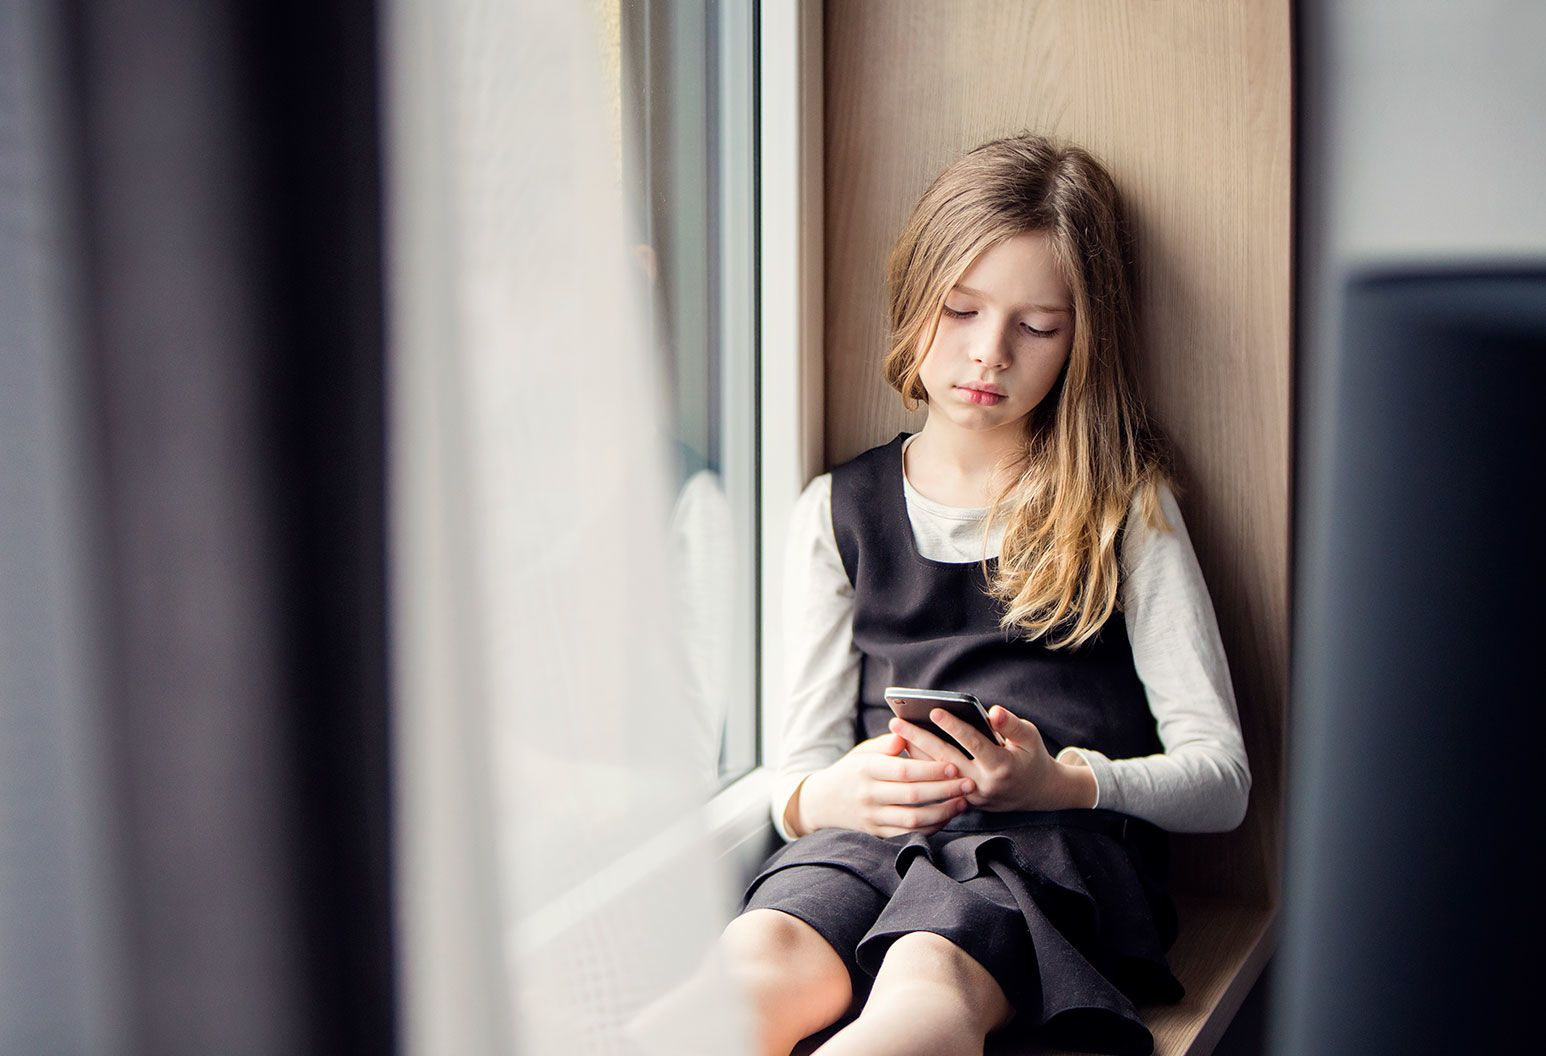 How to Know if Your Child is Being Bullied—and What to Do About It